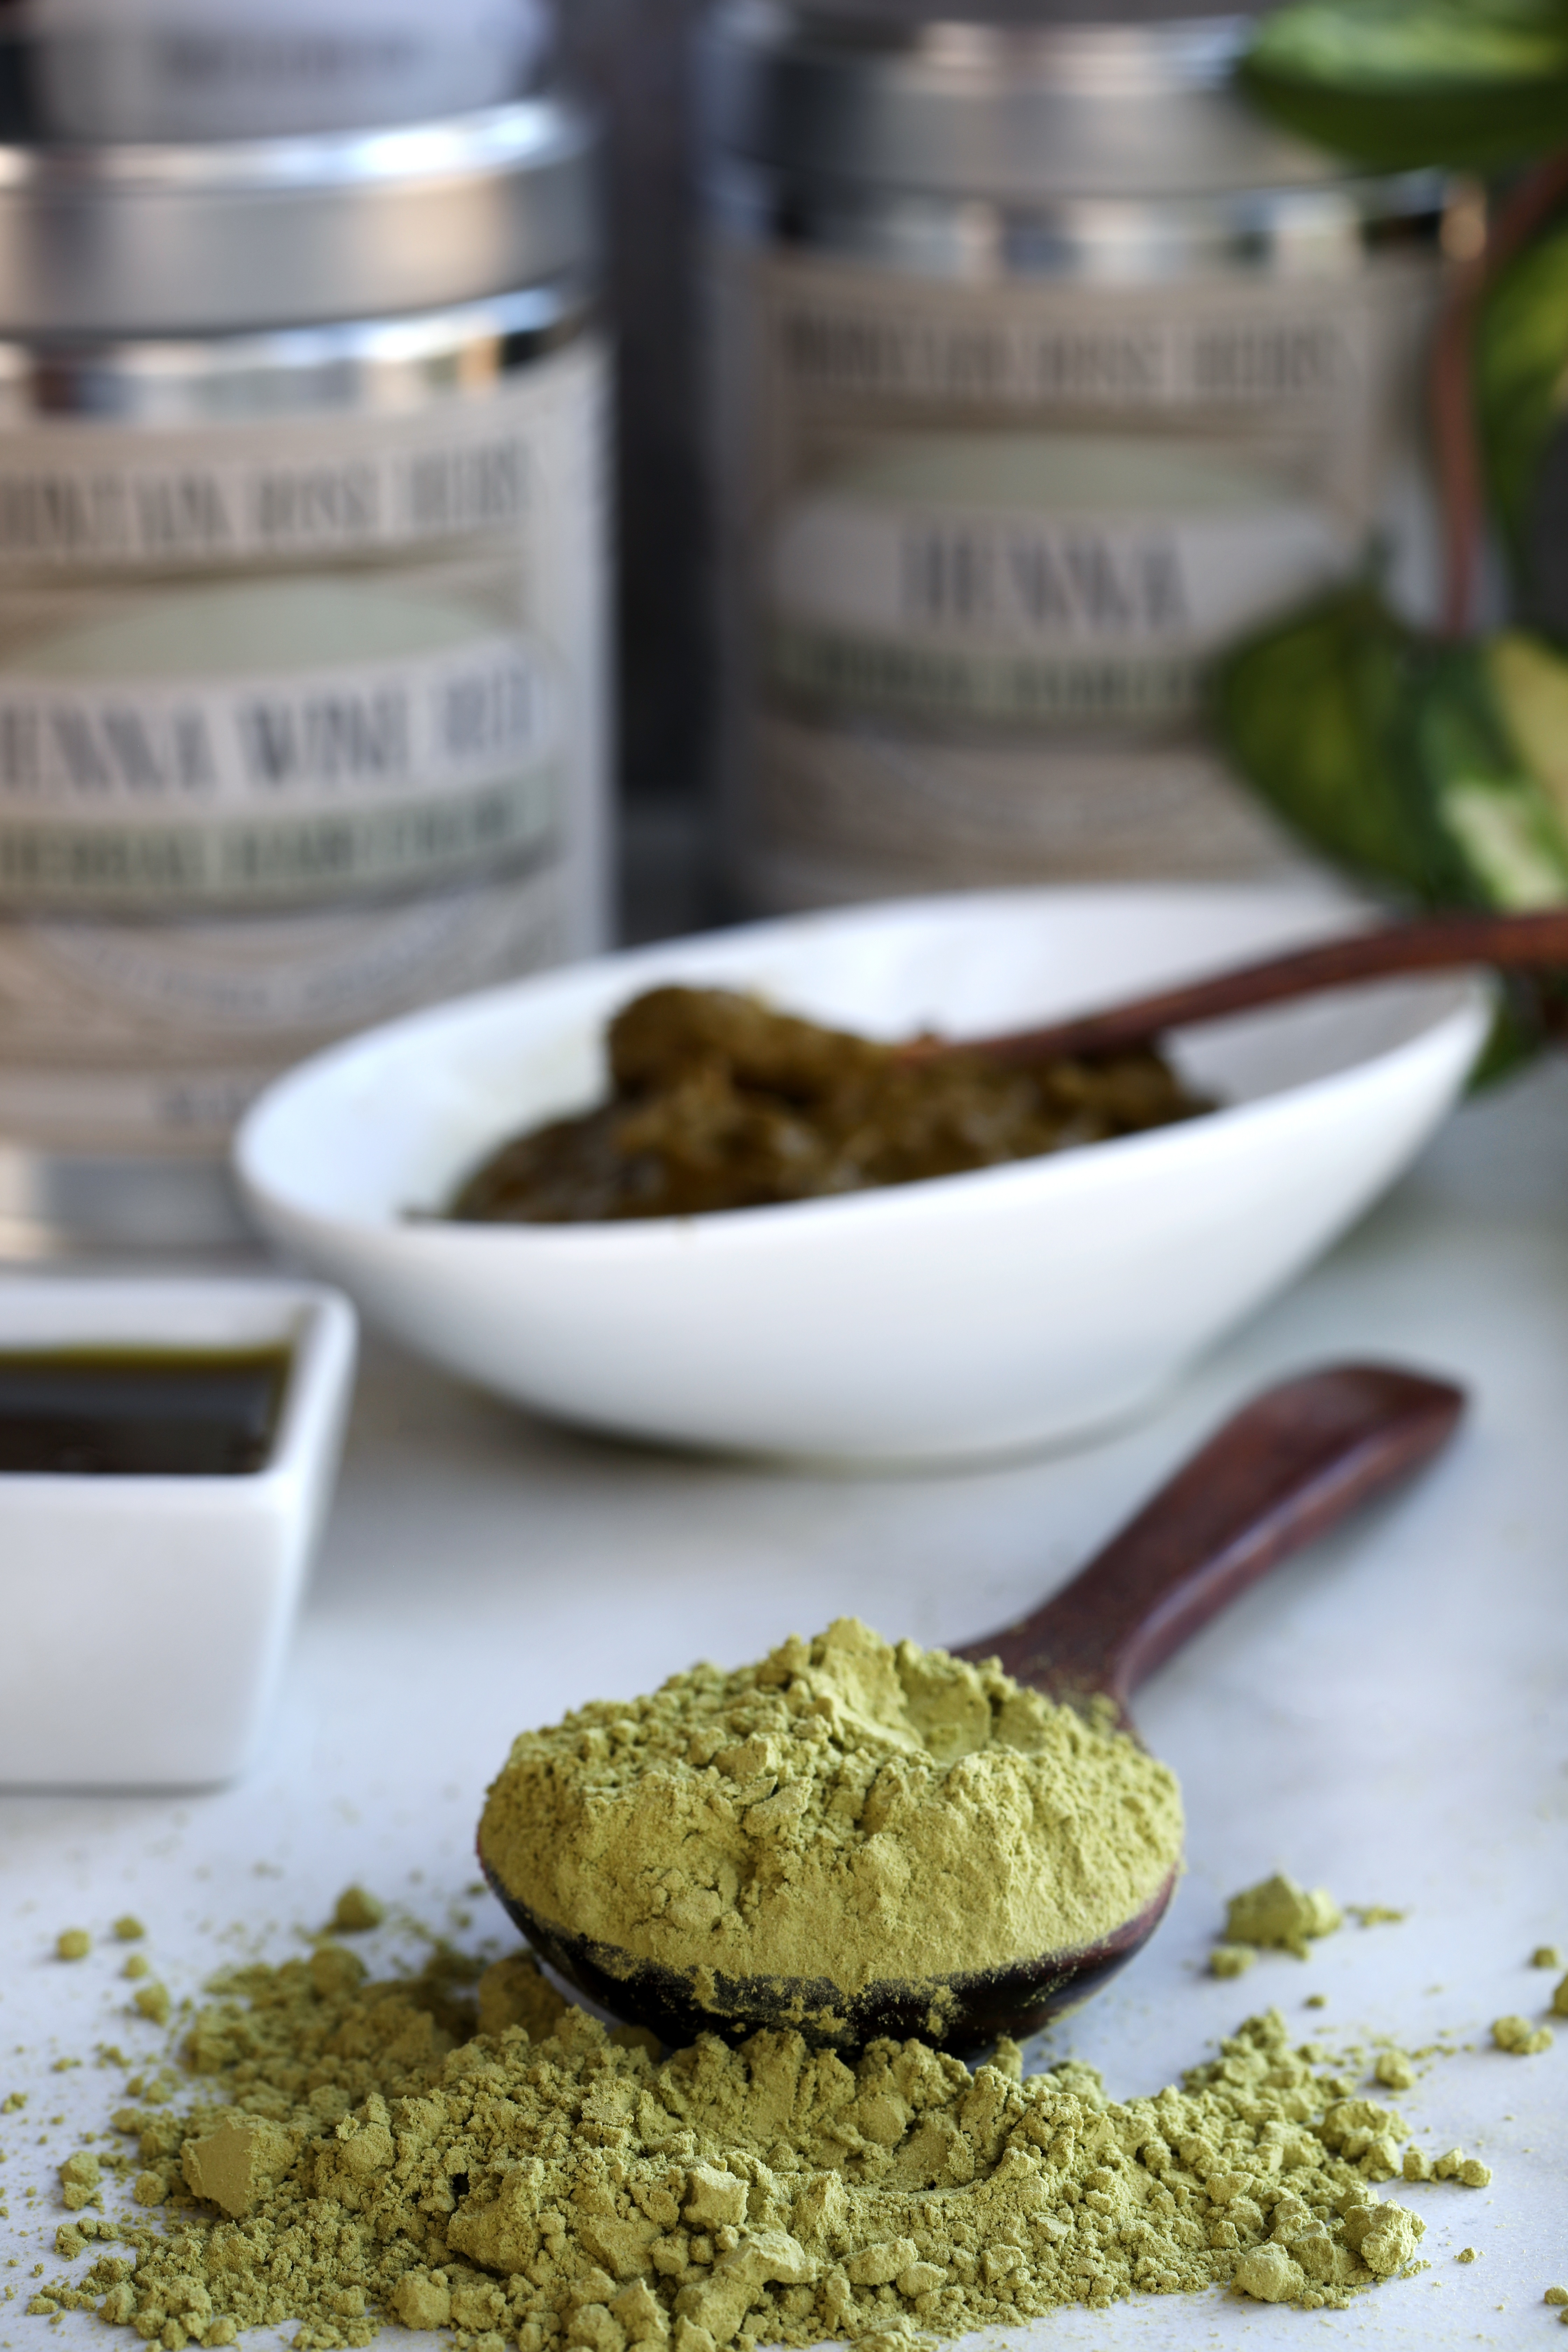 Spoon with green powder spilling out with henna tins and mixing bowl in background